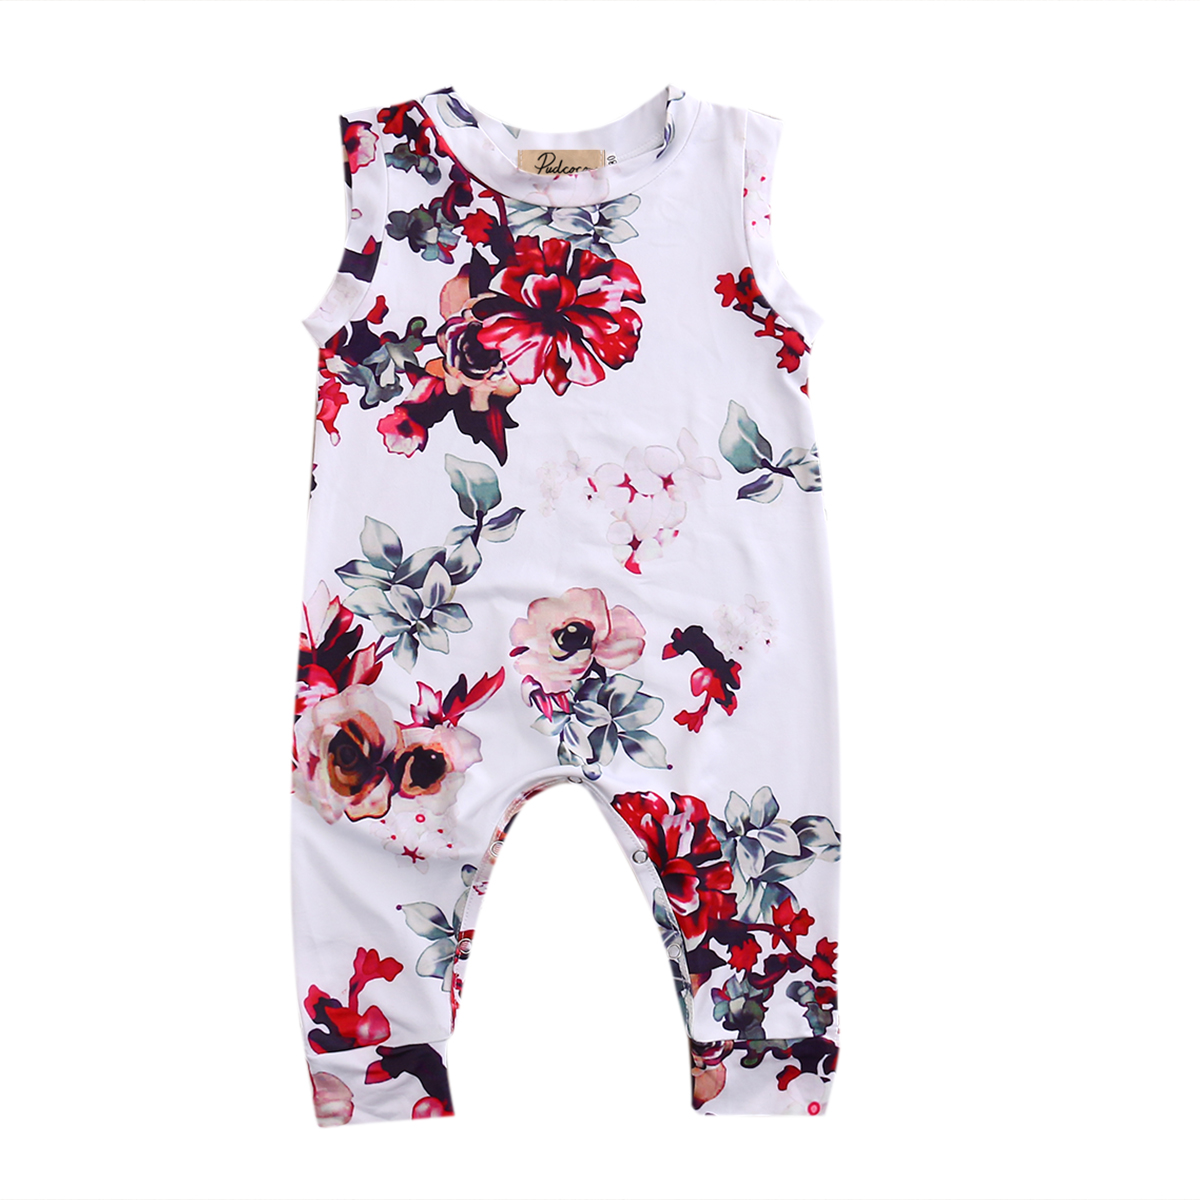 Summer Infant Newborn Kids Summer Toddler Baby Boys Girls Romper Outfits Sunsuit Jumpsuit Cotton Clothes baby clothing summer infant newborn baby romper short sleeve girl boys jumpsuit new born baby clothes